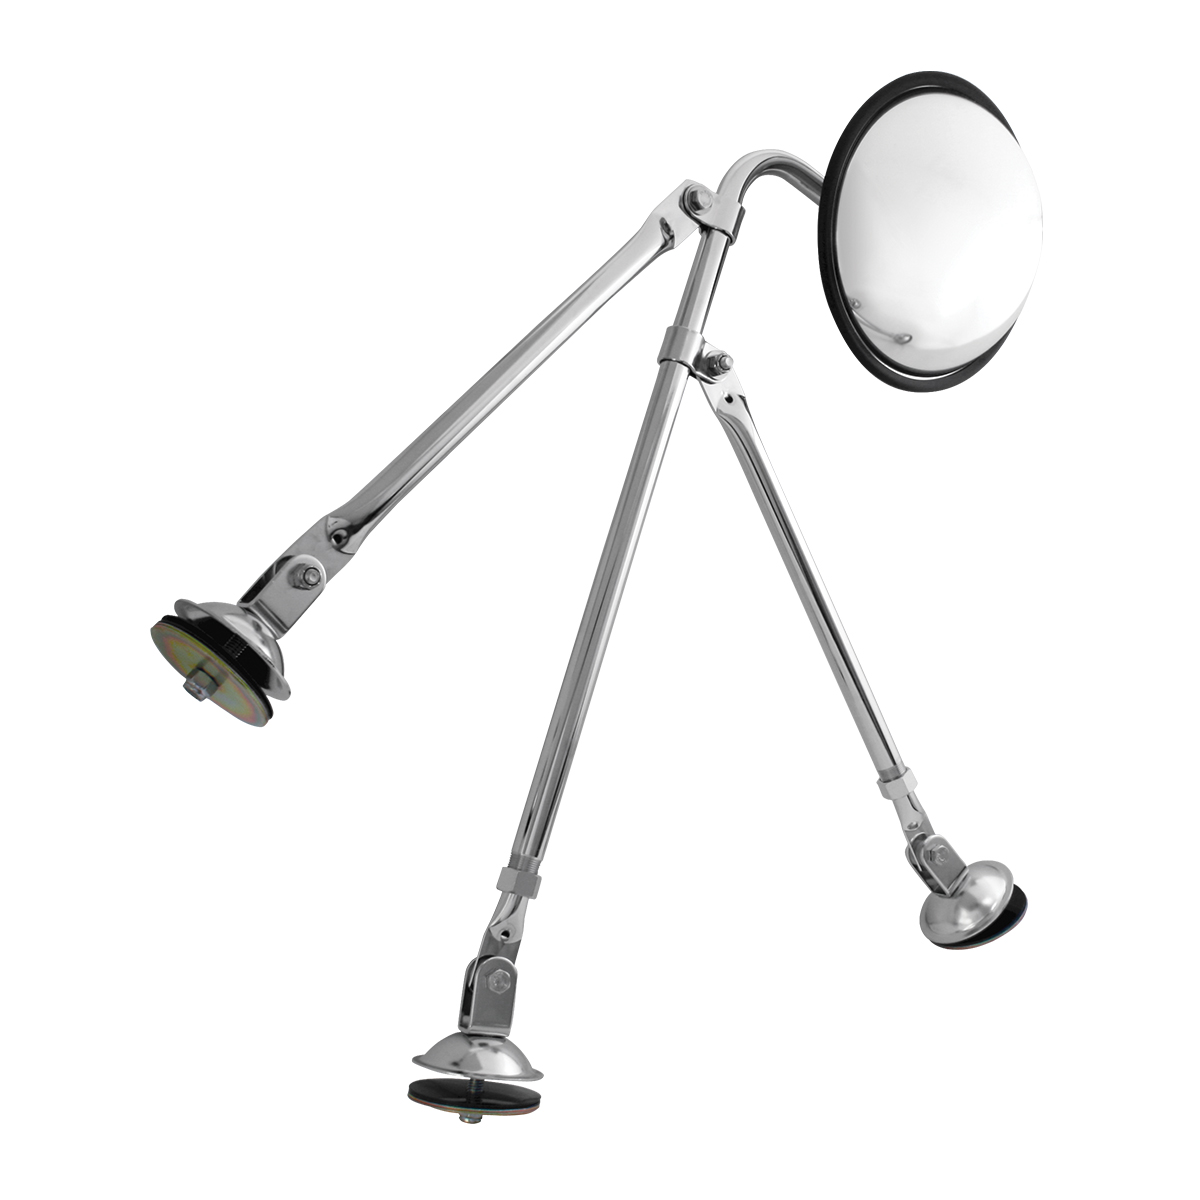 "Tripod Fender Mount Safety Mirror Assembly with 8.5"" Wide Angle Convex Mirror"